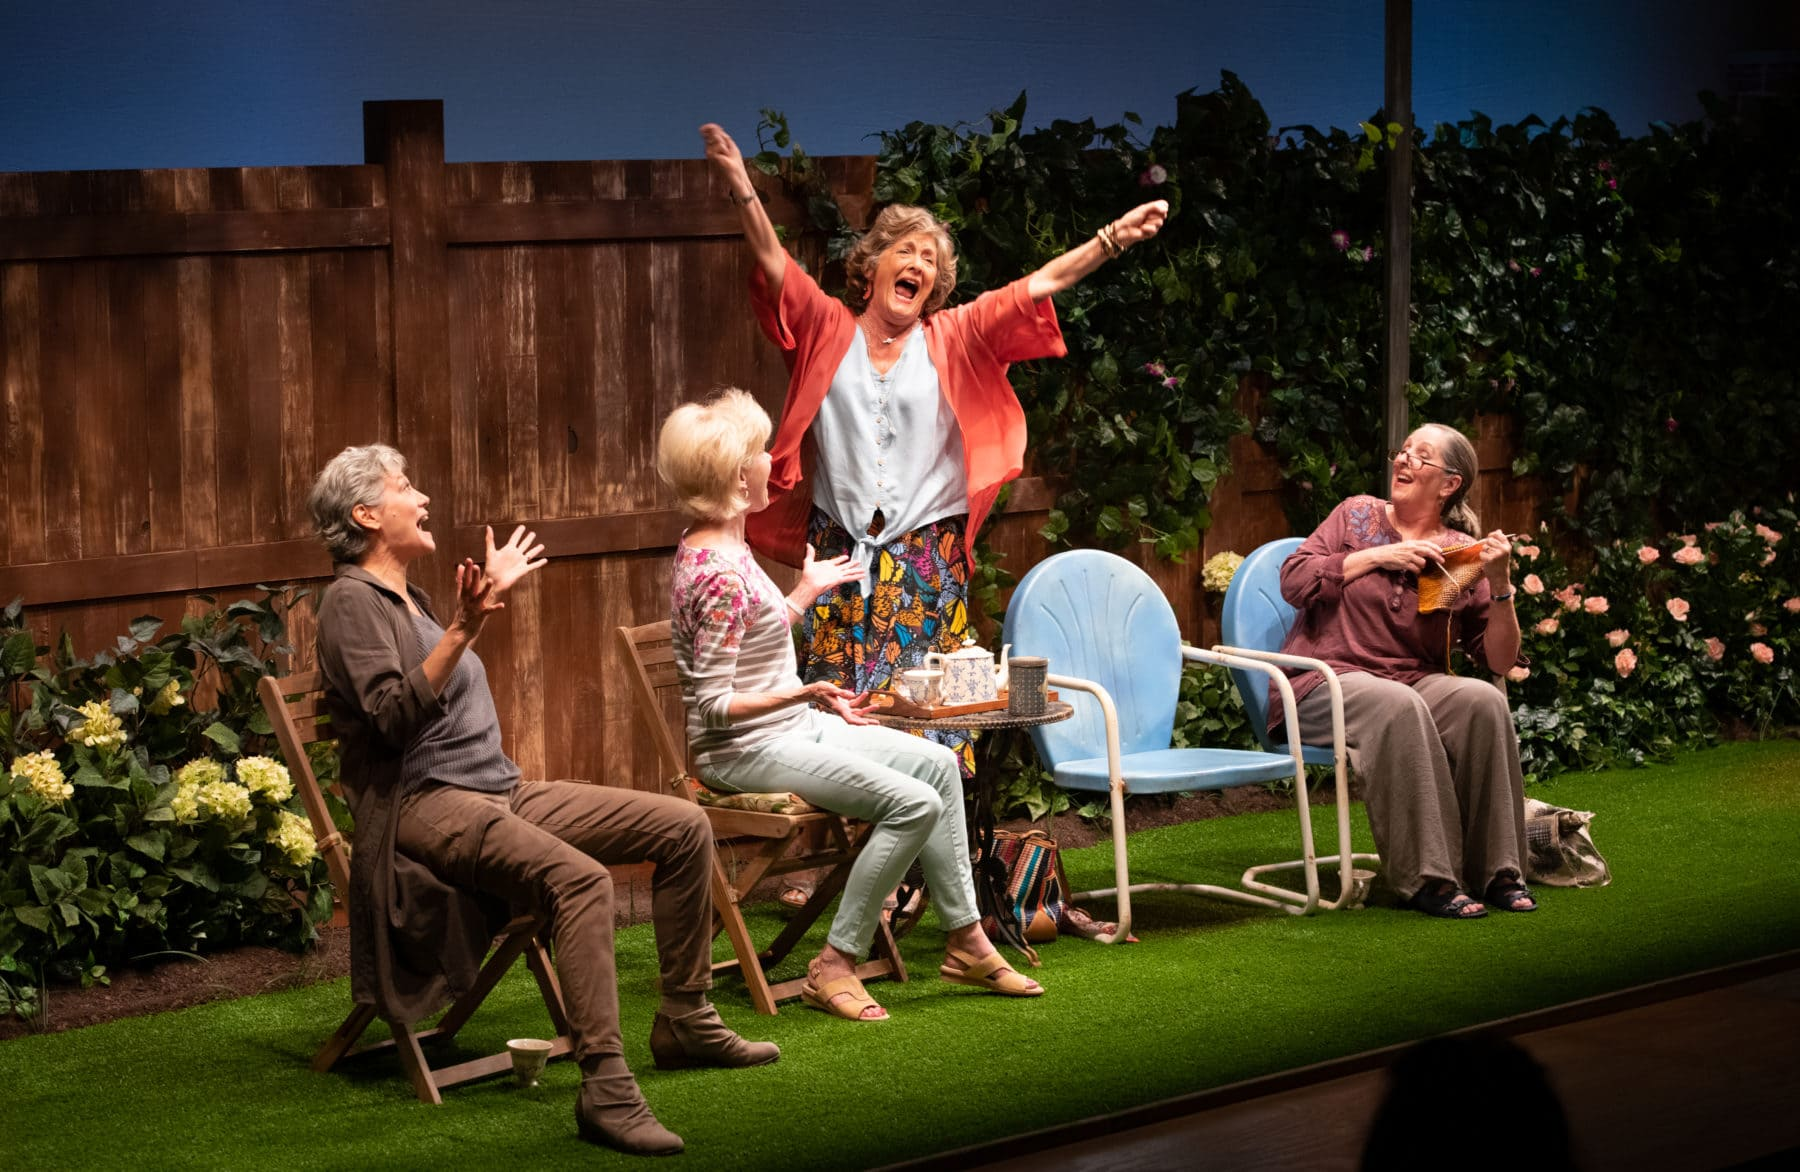 Valerie Leonard as Mrs. Jarrett, Helen Hedman as Sally, Catherine Flye as Vi, and Brigid Cleary as Lena in 'Escaped Alone' at Signature Theatre. Photo by Margot Schulman.